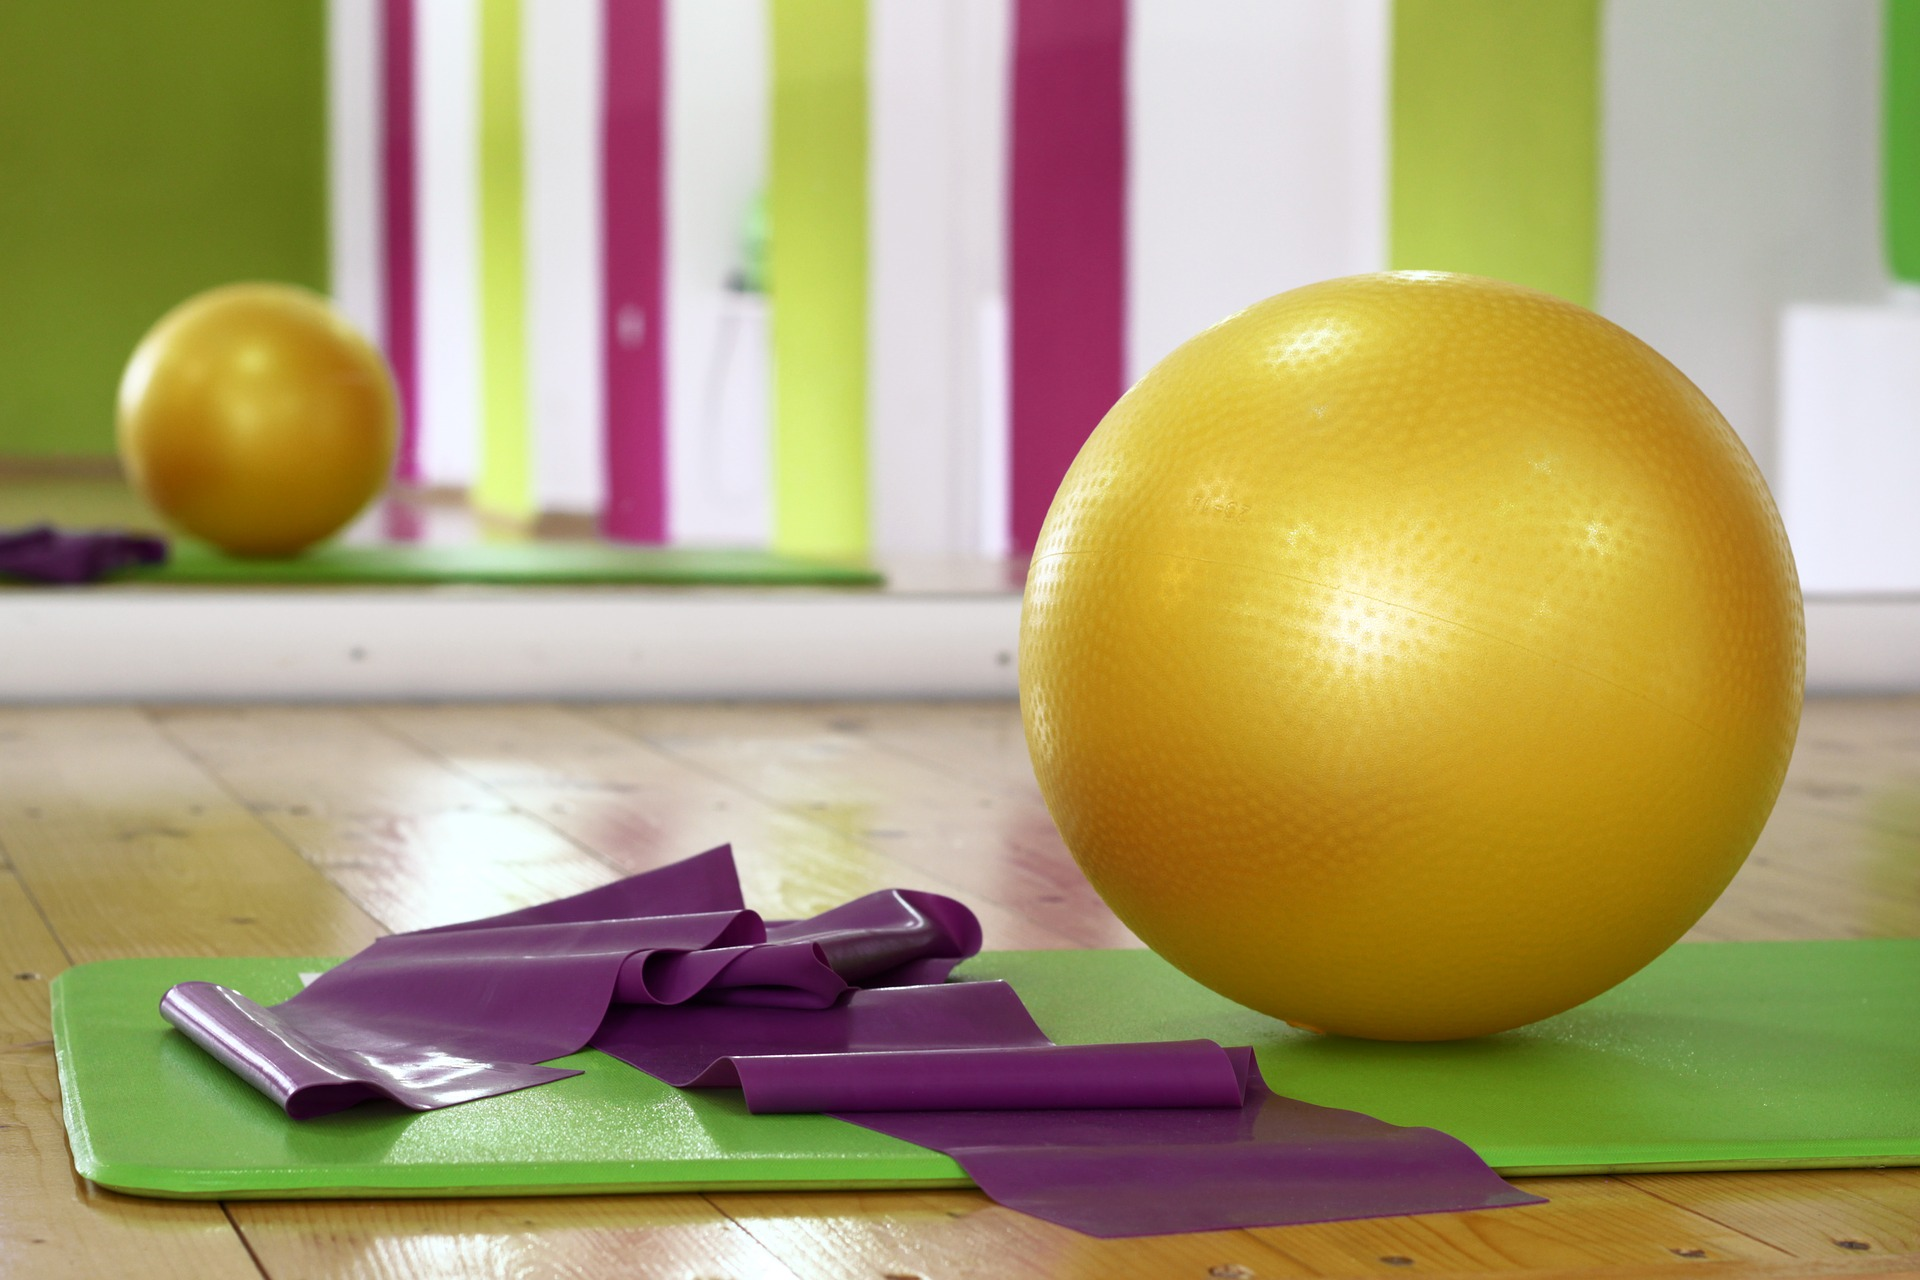 Yoga mat, strap and ball ready for yoga class offered as an alternative employee benefit